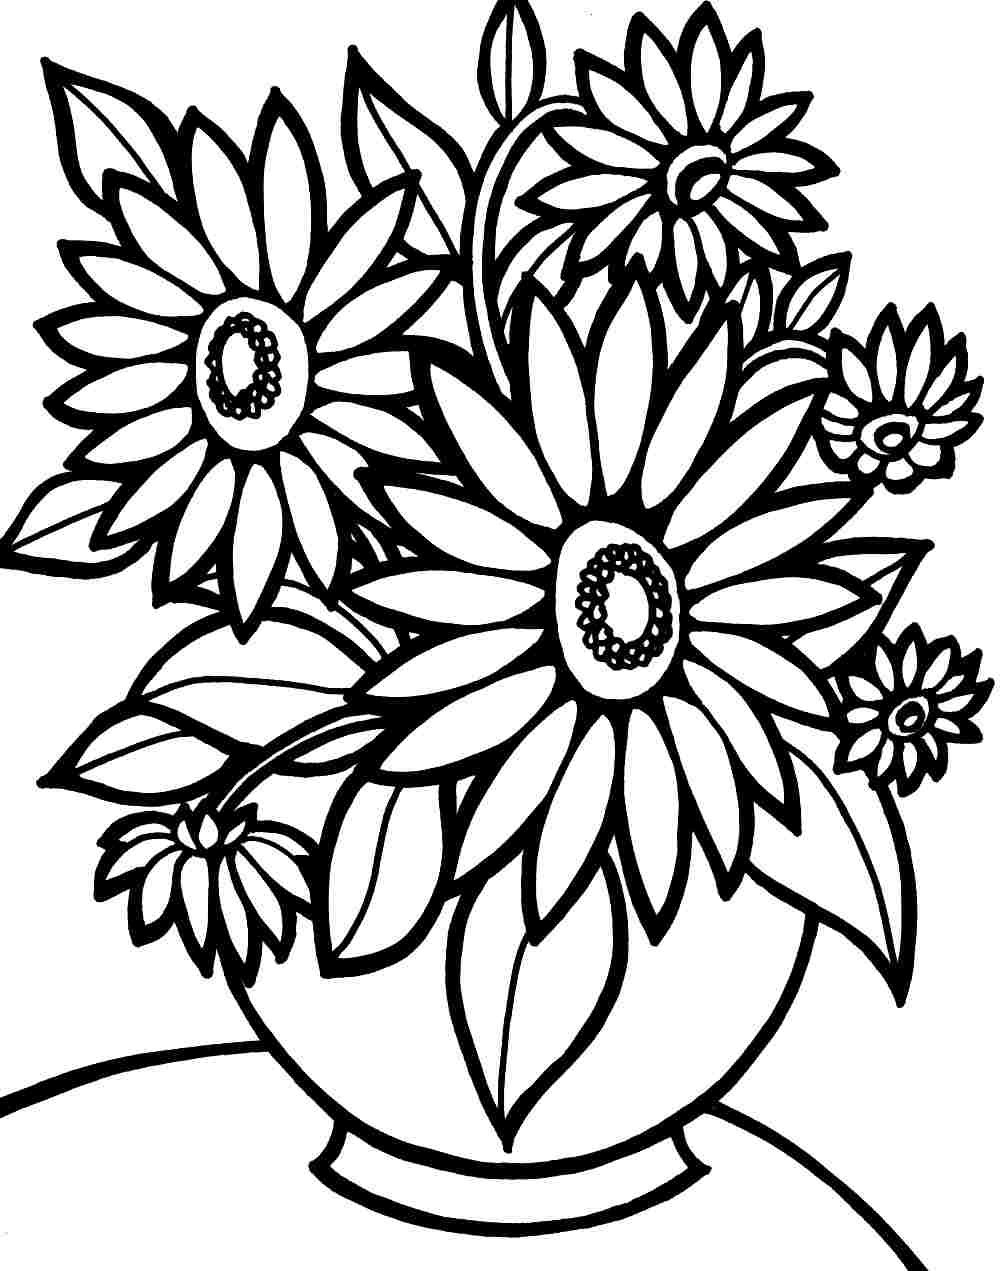 Pinhema On Drawing | Pinterest | Flower Coloring Pages - Free Printable Flower Coloring Pages